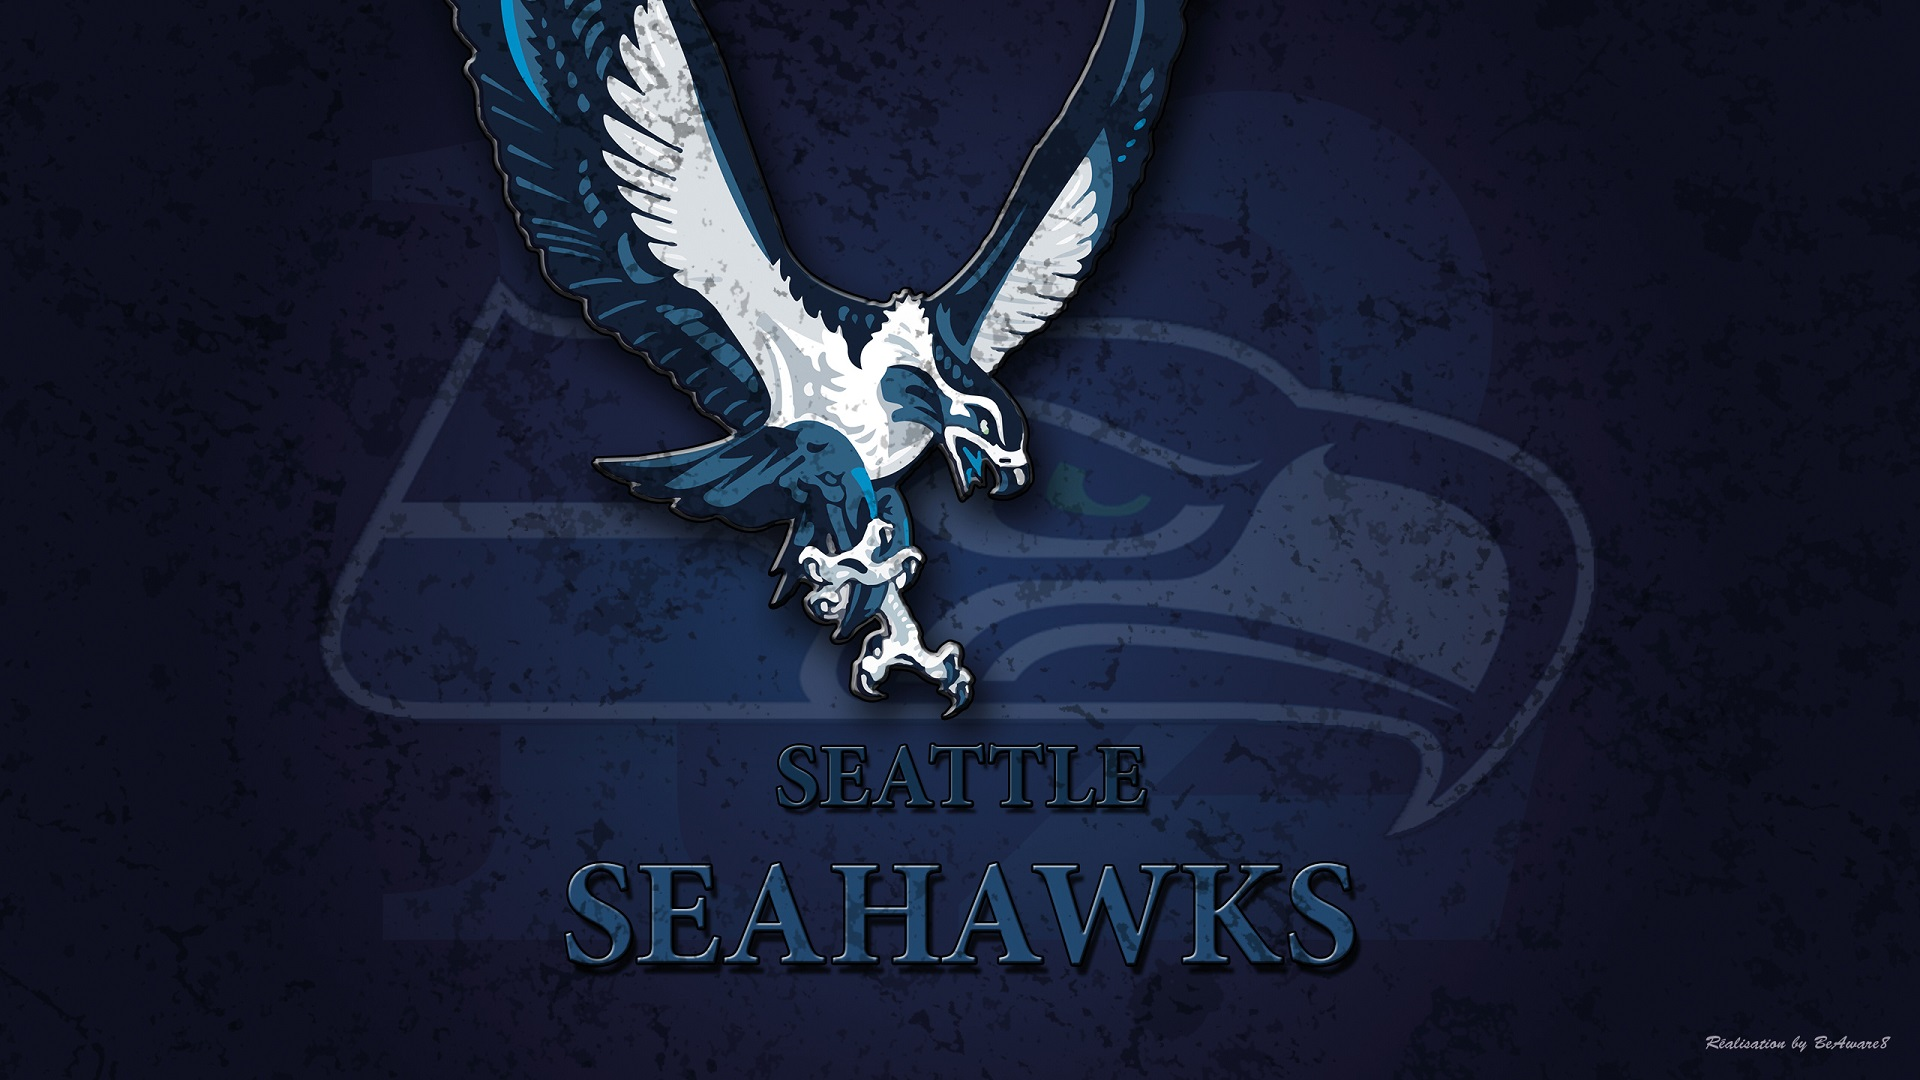 seahawks high resolution wallpaper - photo #27